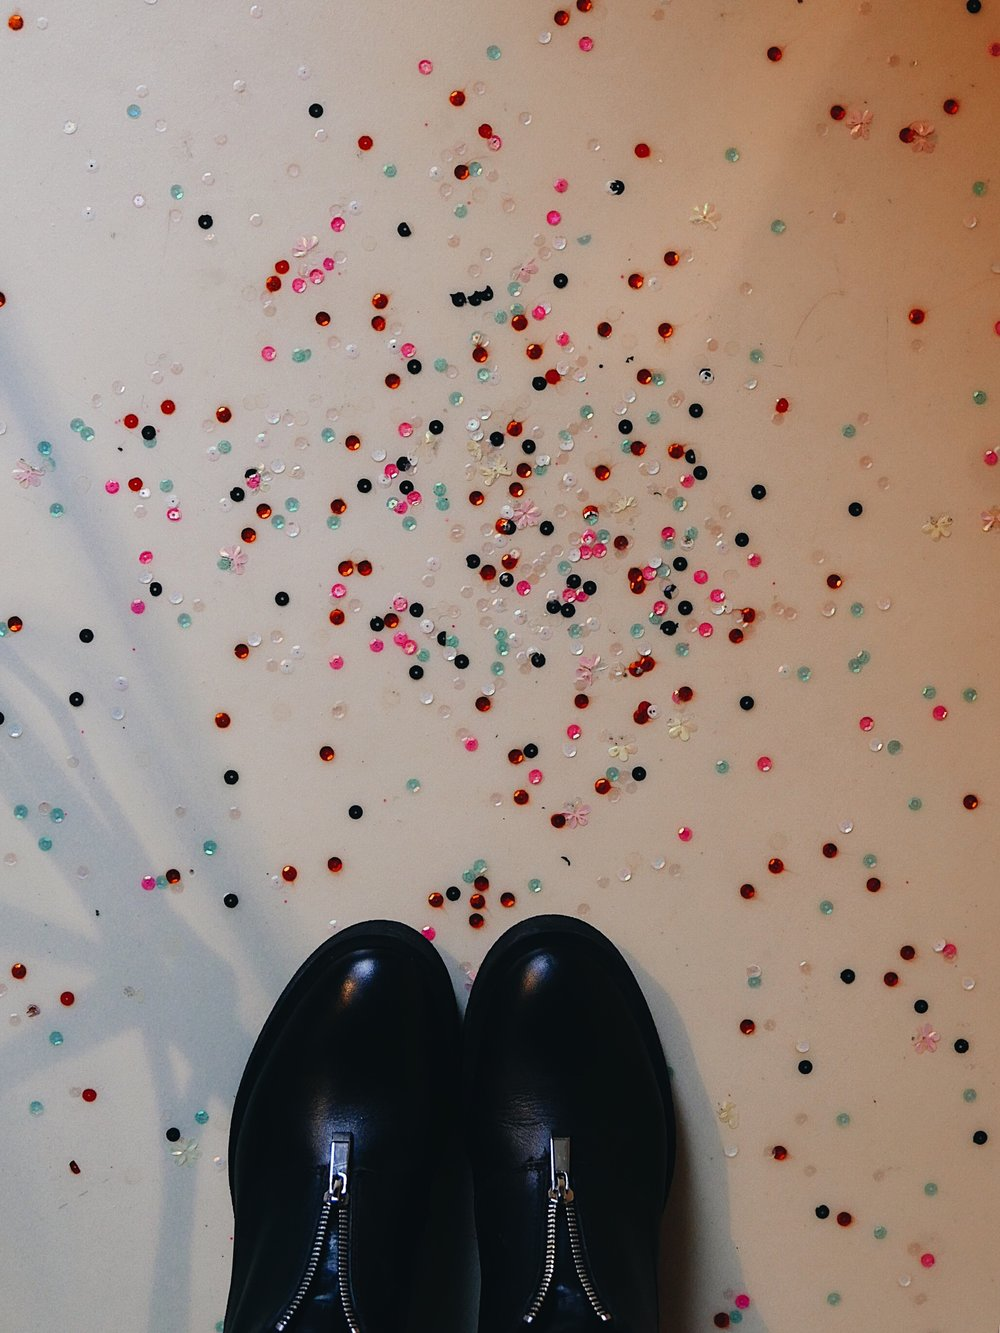 confettis on the floor